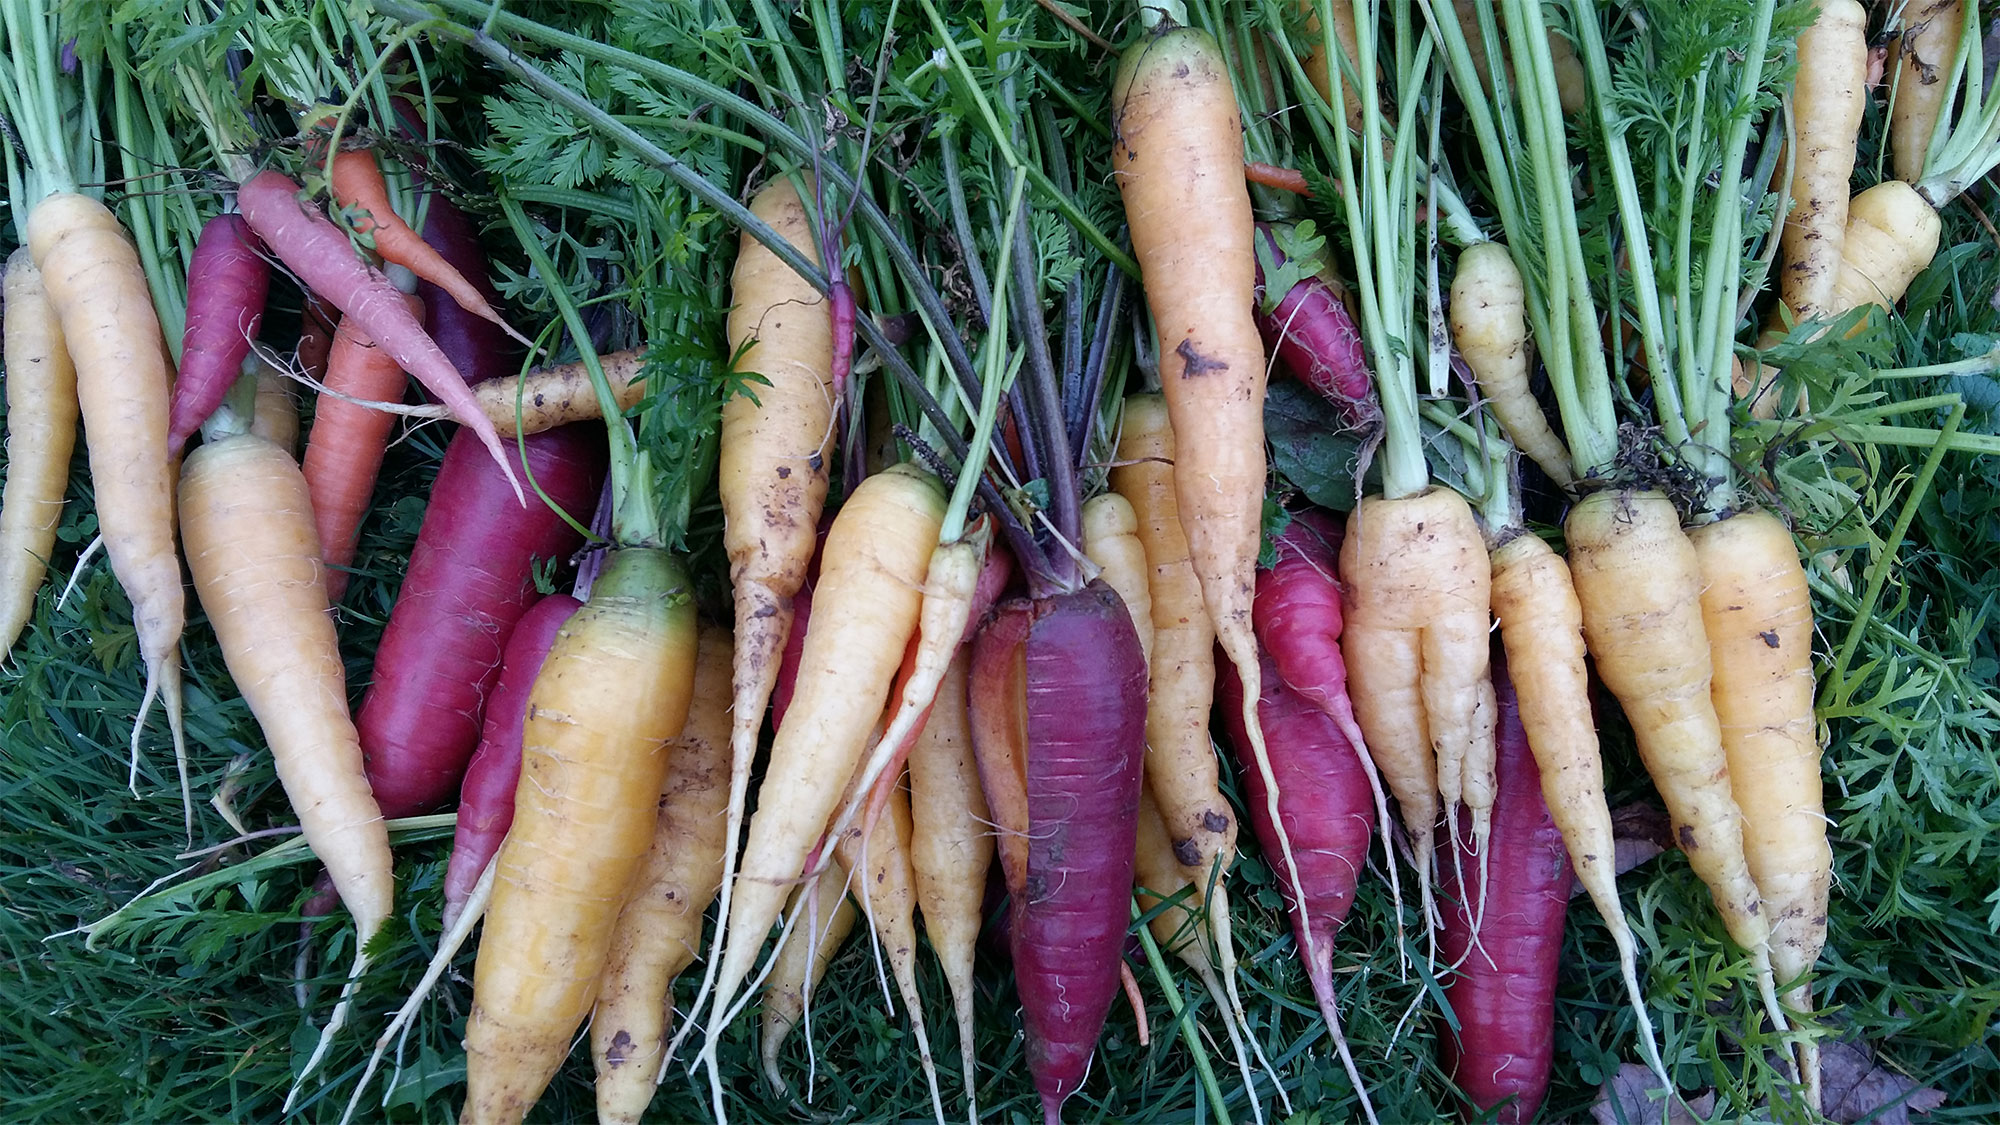 A bunch of carrots of various colors.